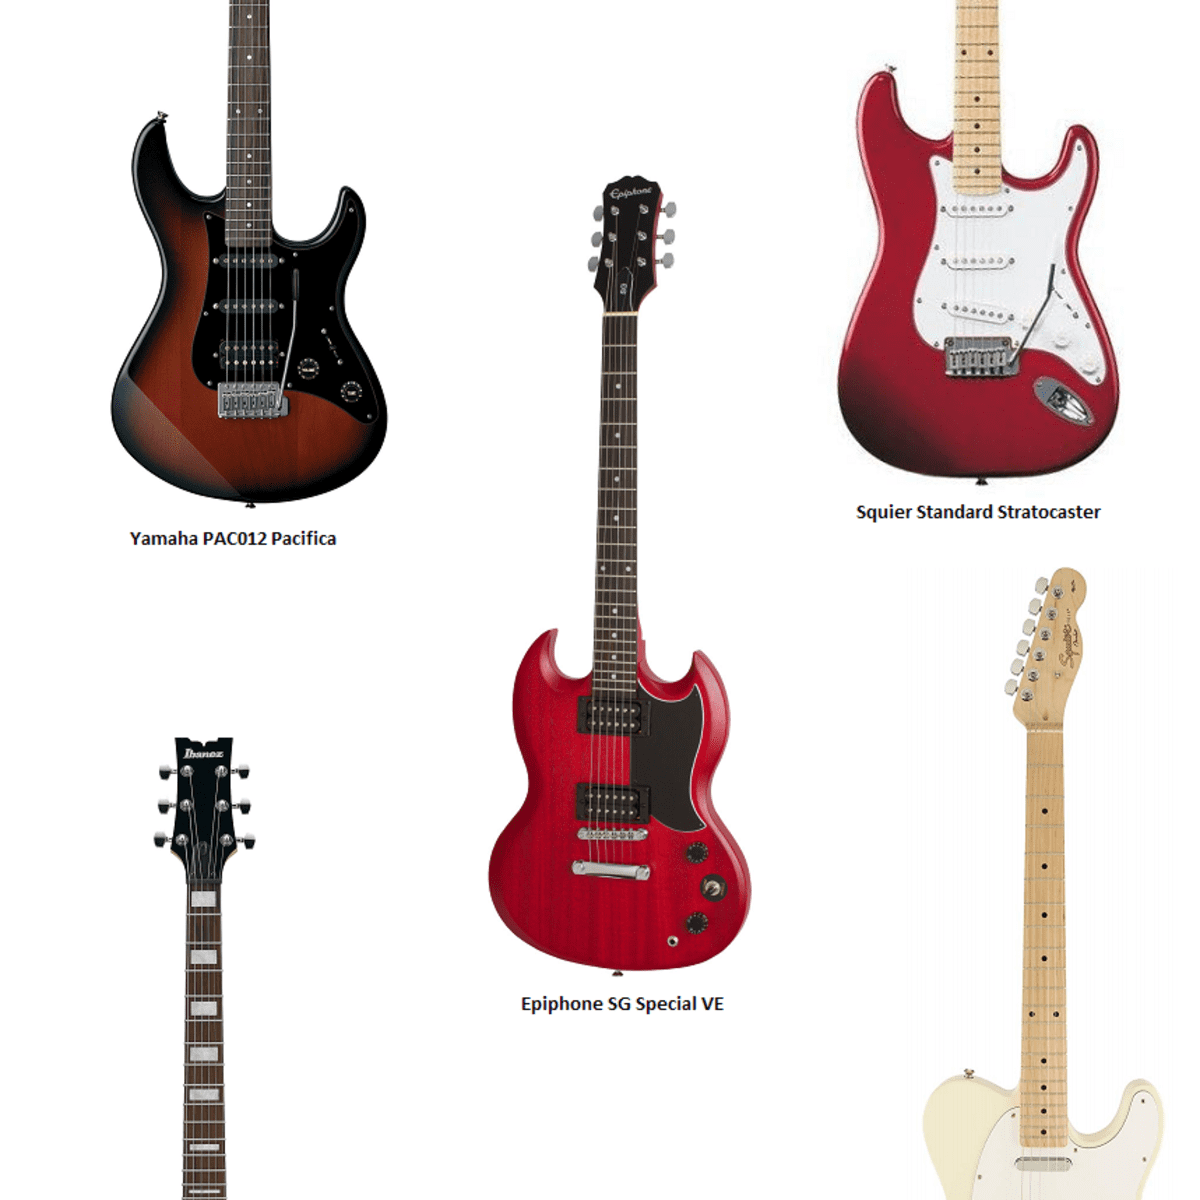 Top 5 Best Electric Guitars For Beginners 2019 Spinditty Music